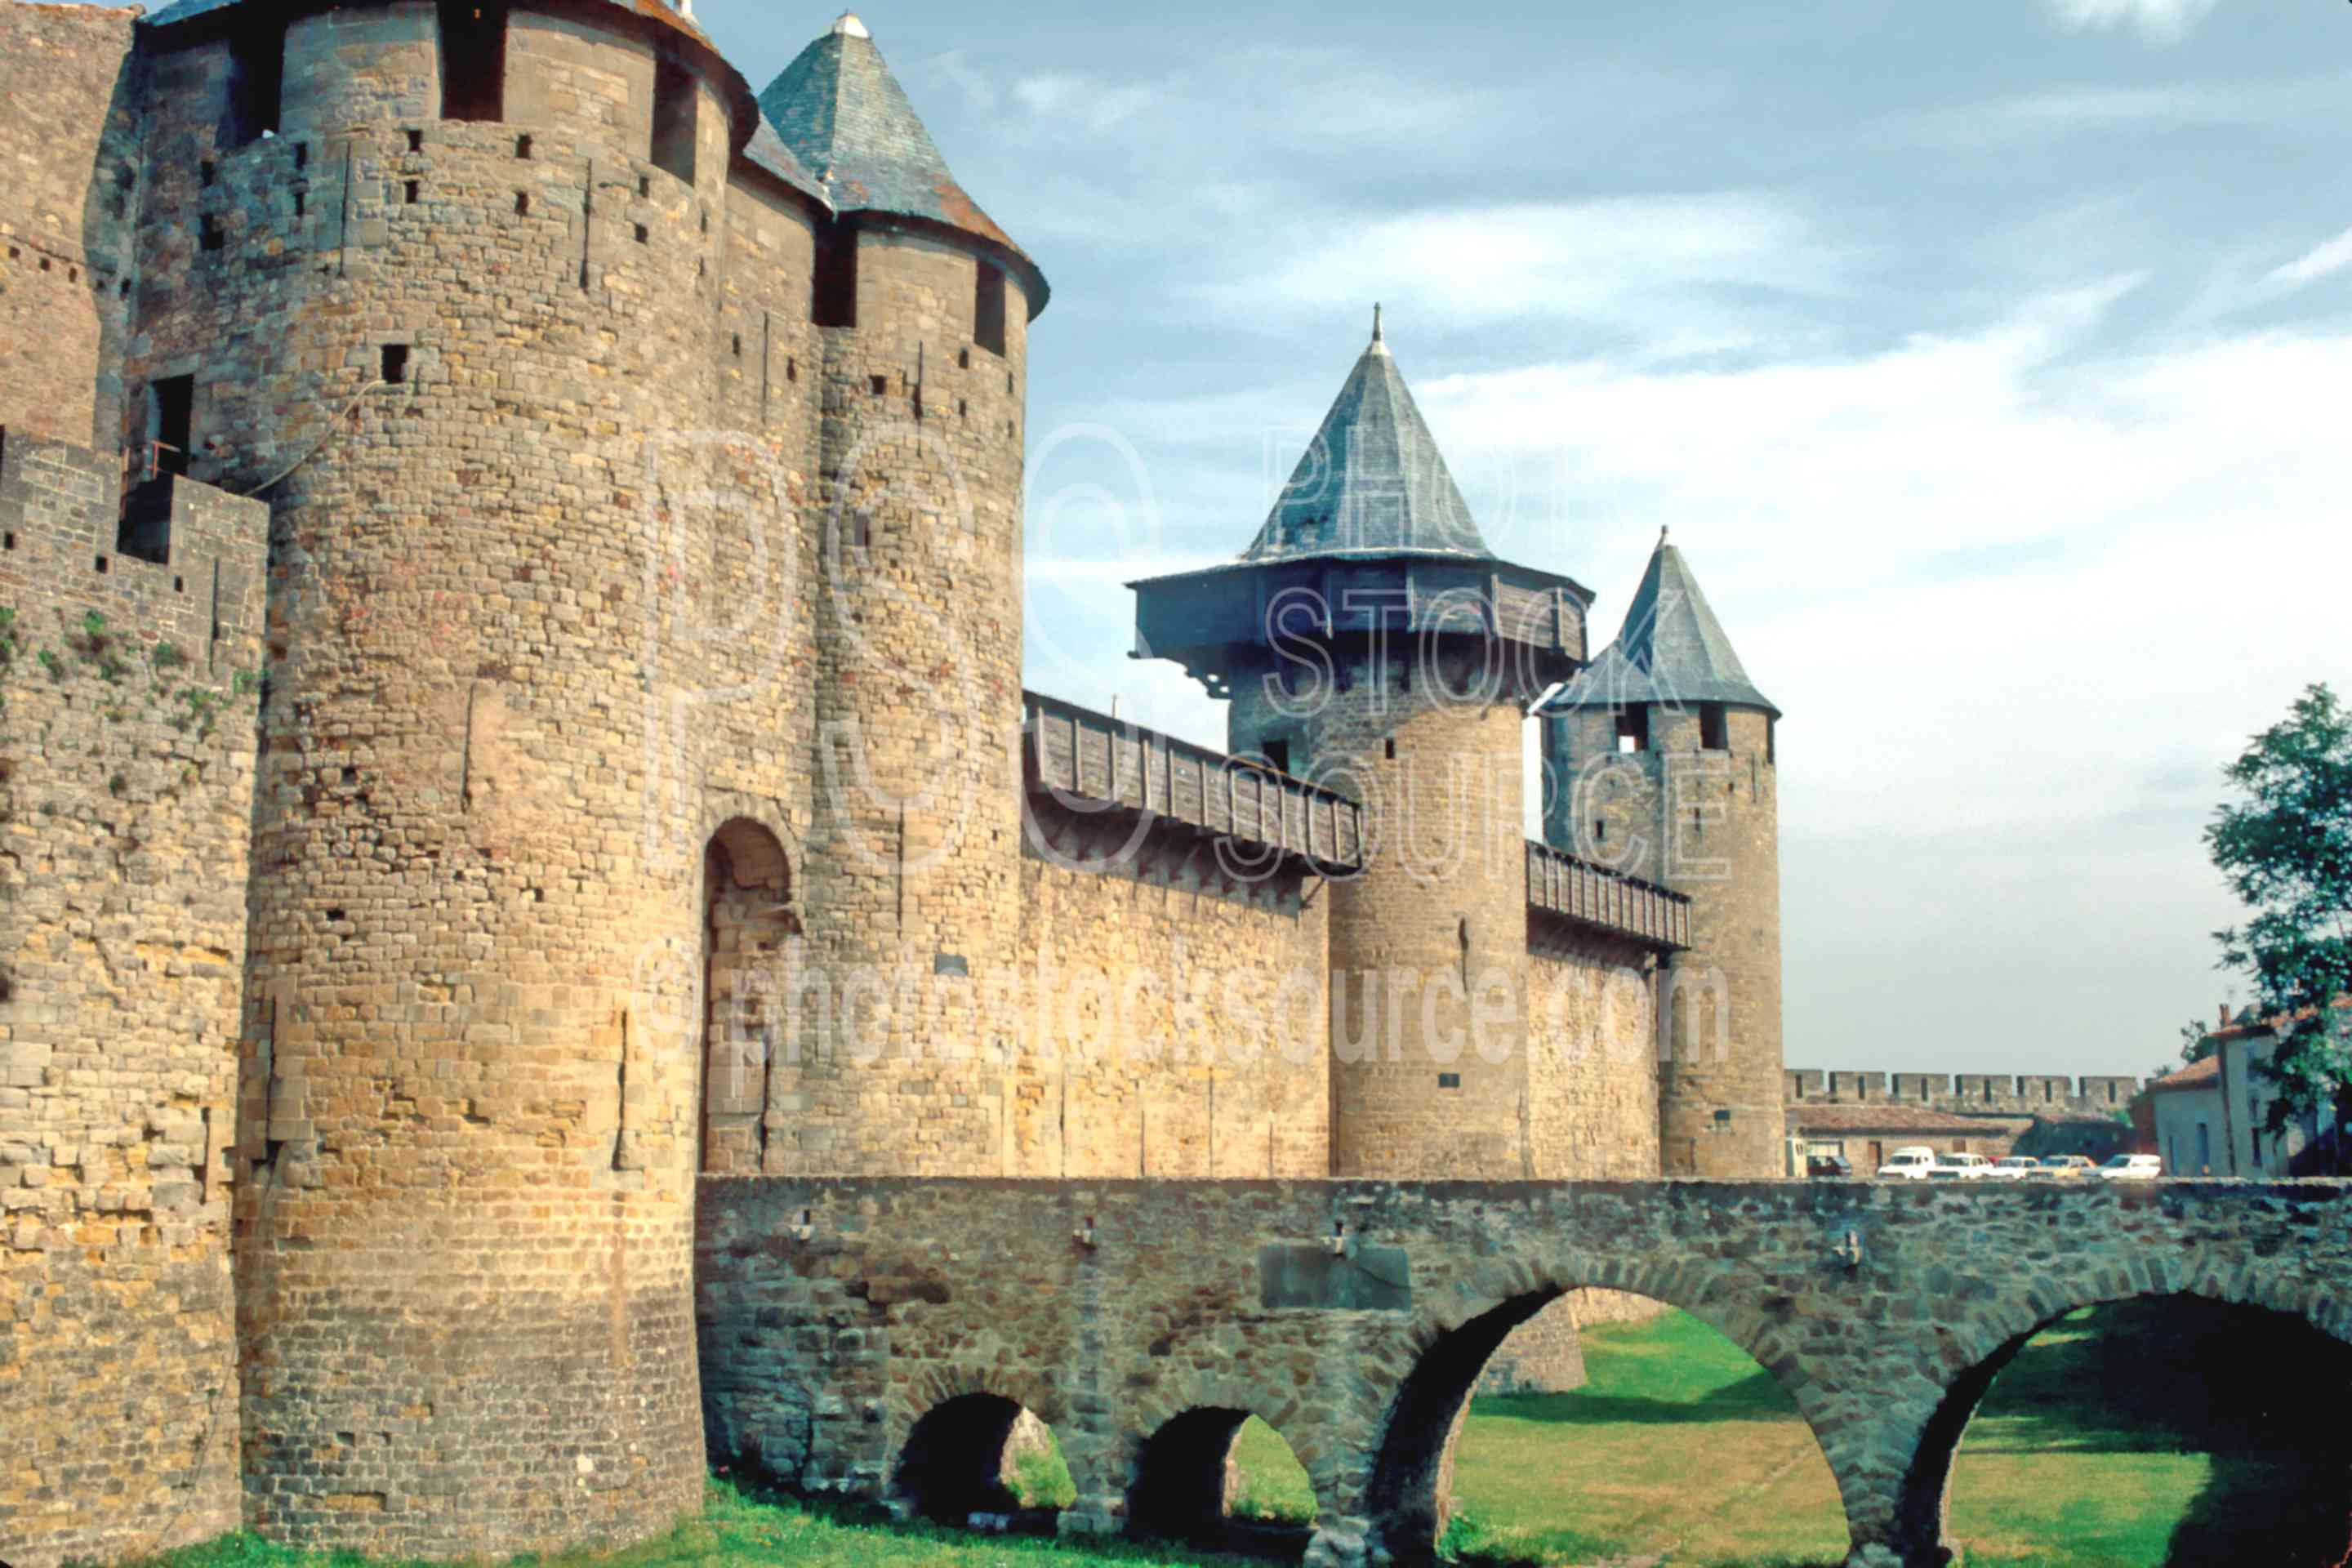 Outside the City Walls,bridge,castle,europe,medieval,wall,france castles,bridges